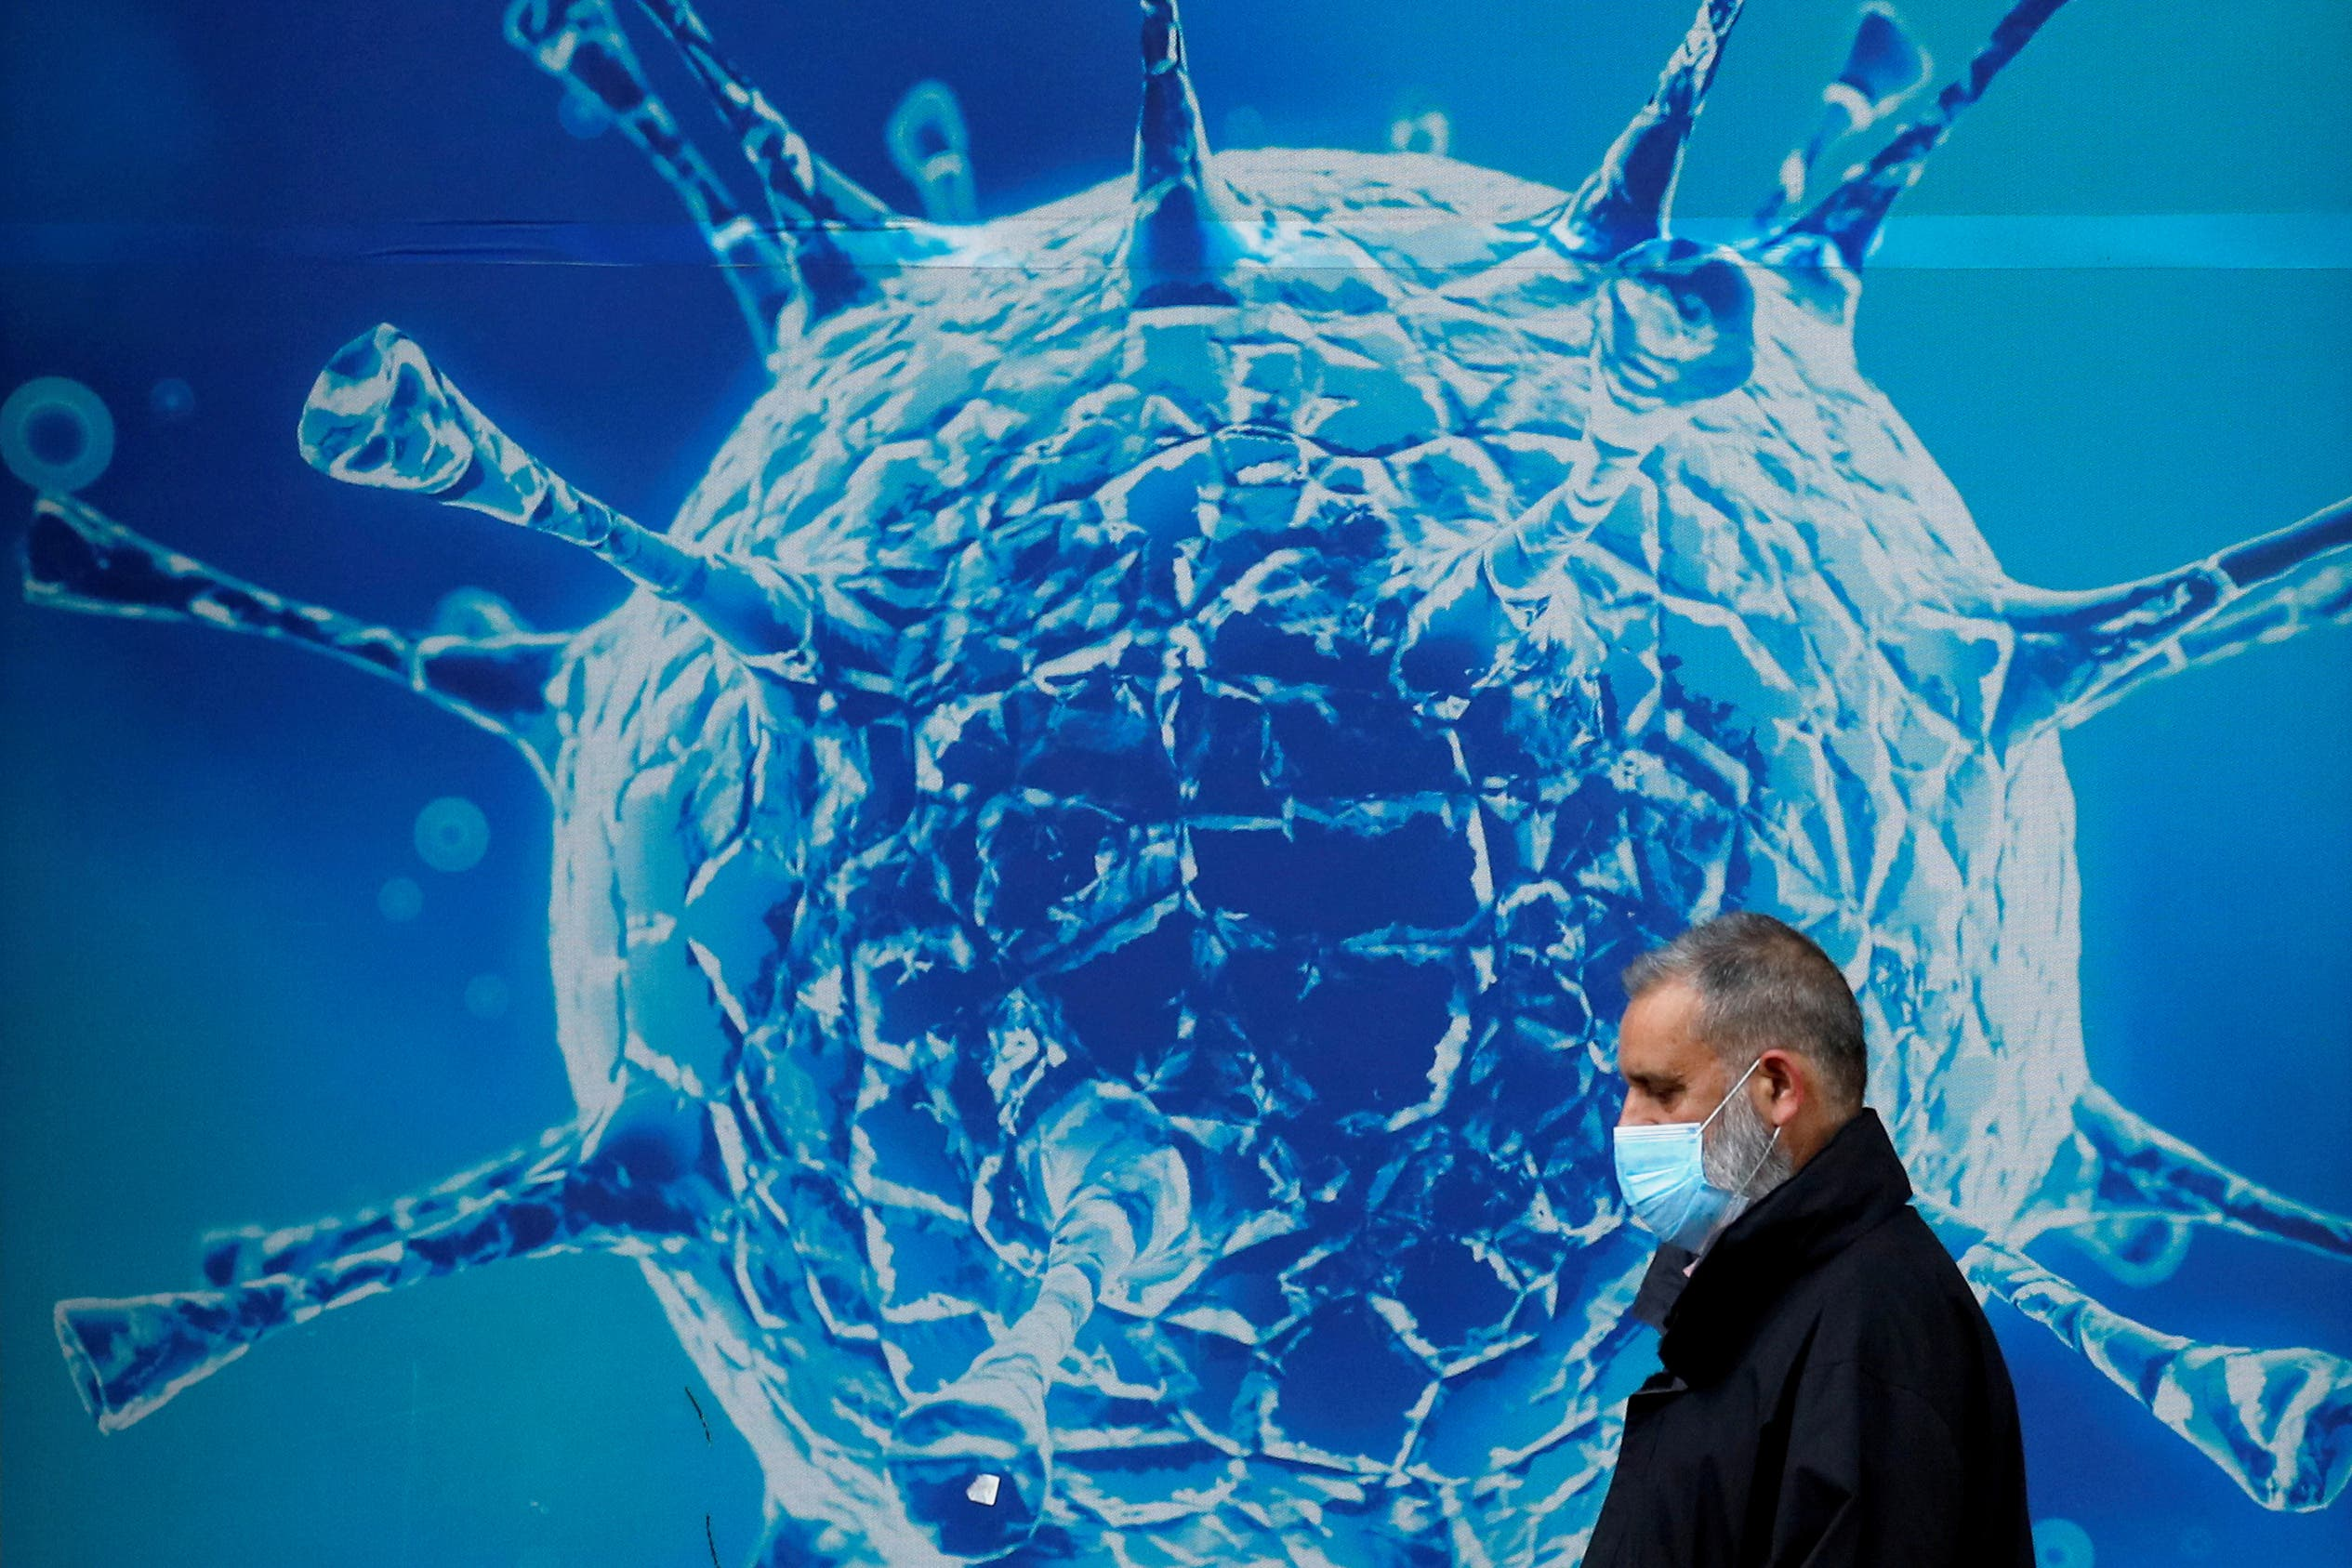 A man wearing a protective face mask walks past an illustration of a virus outside a regional science centre in Oldham, Britain August 3, 2020. (File photo: Reuters)